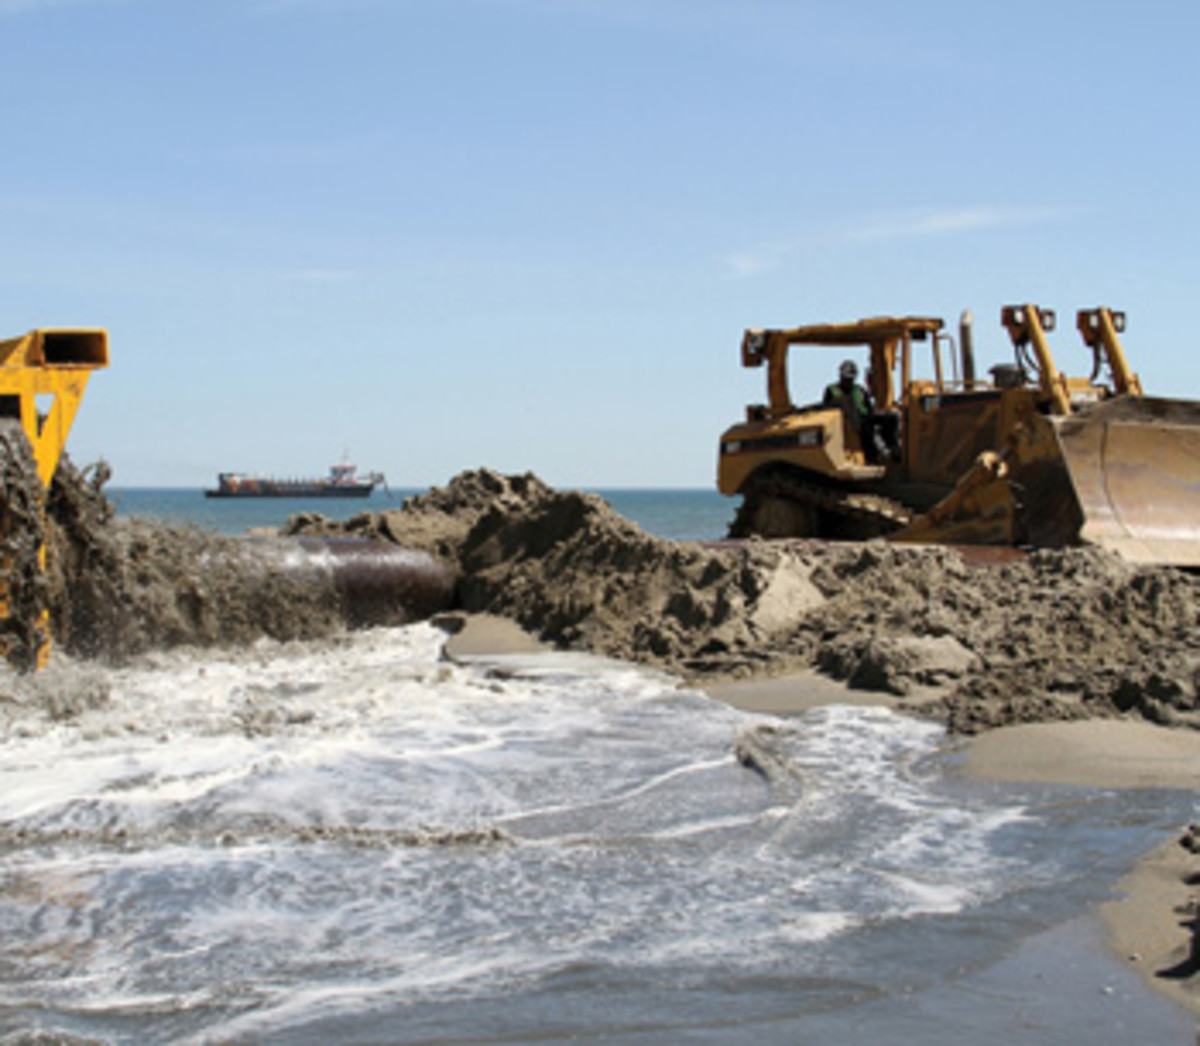 Some believe using offshore sand to renourish beaches is akin to robbing Peter to pay Paul.